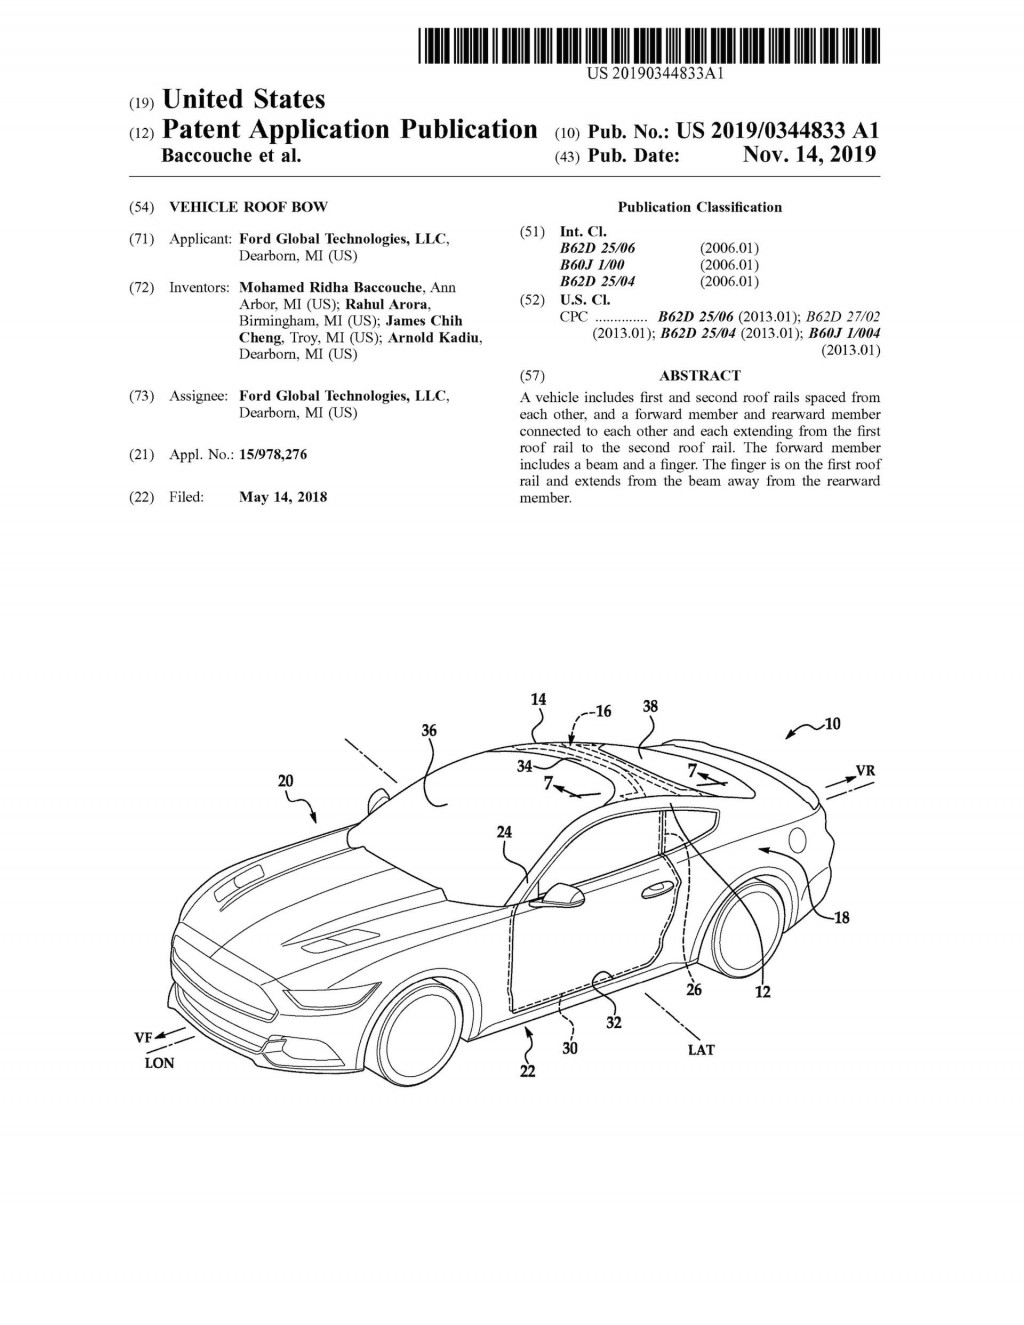 Ford vehicle roof patent